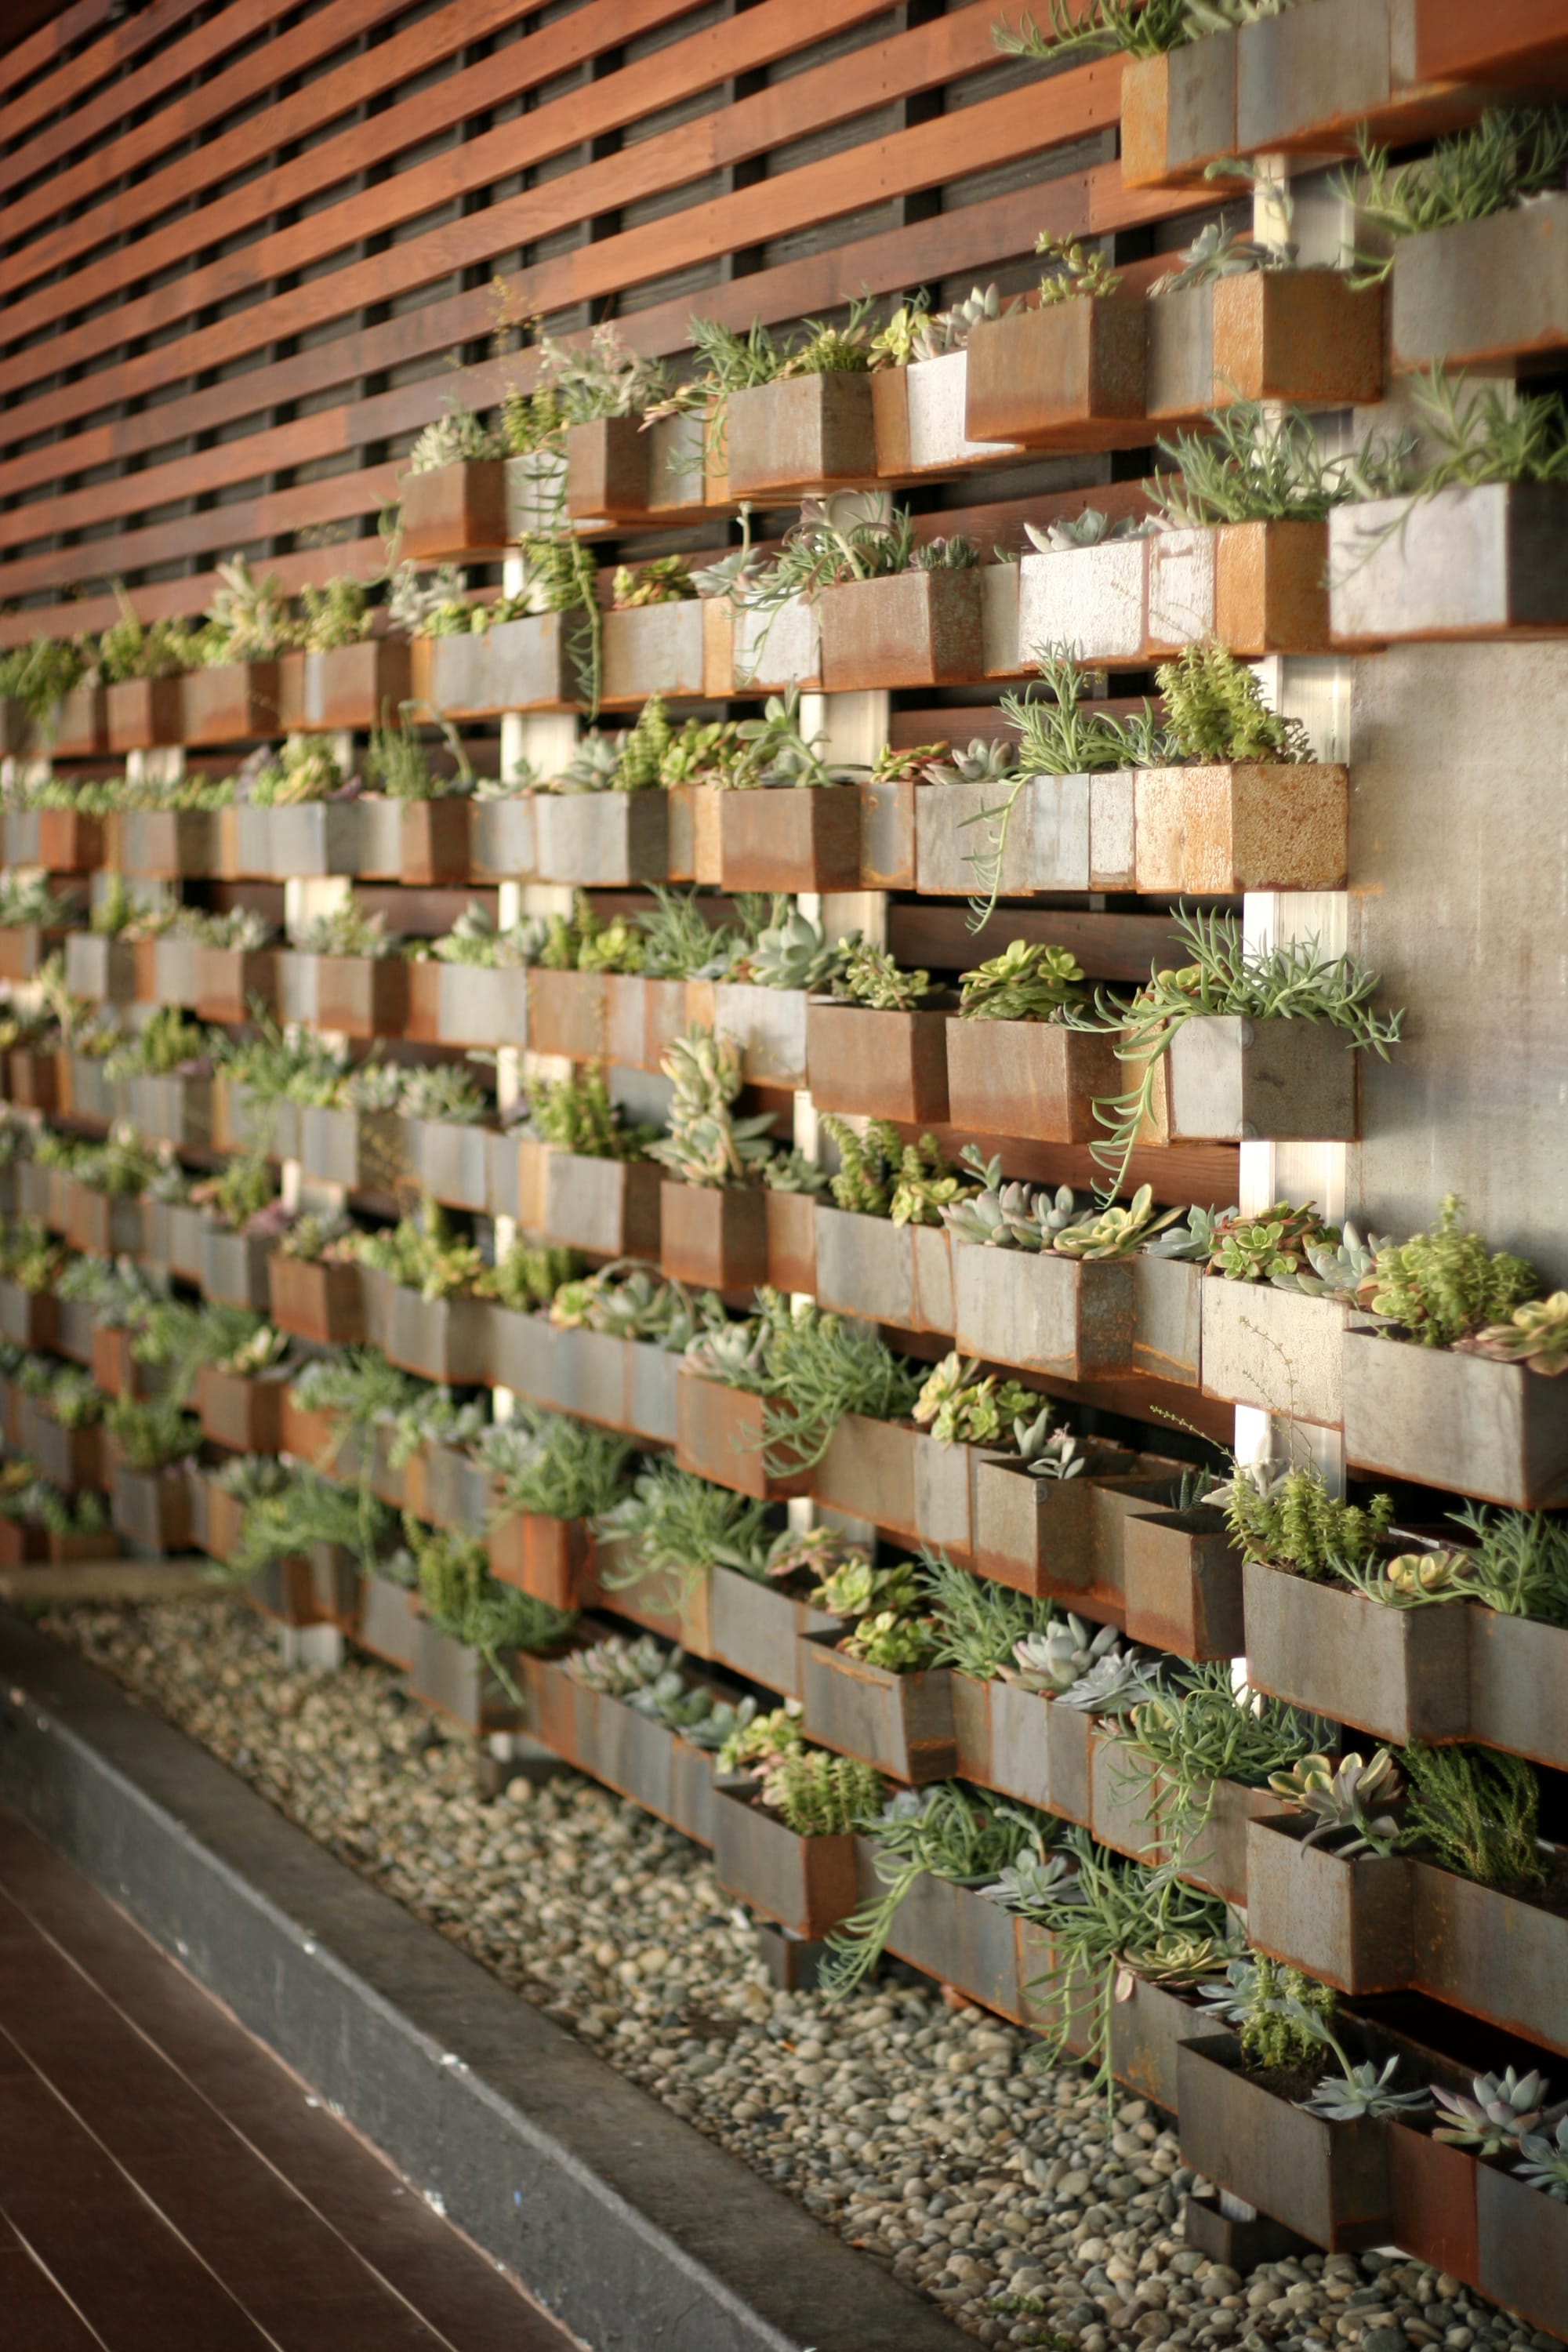 Living Wall Installation by Alexis Laurent, Sculptures at Chambers, Night Club